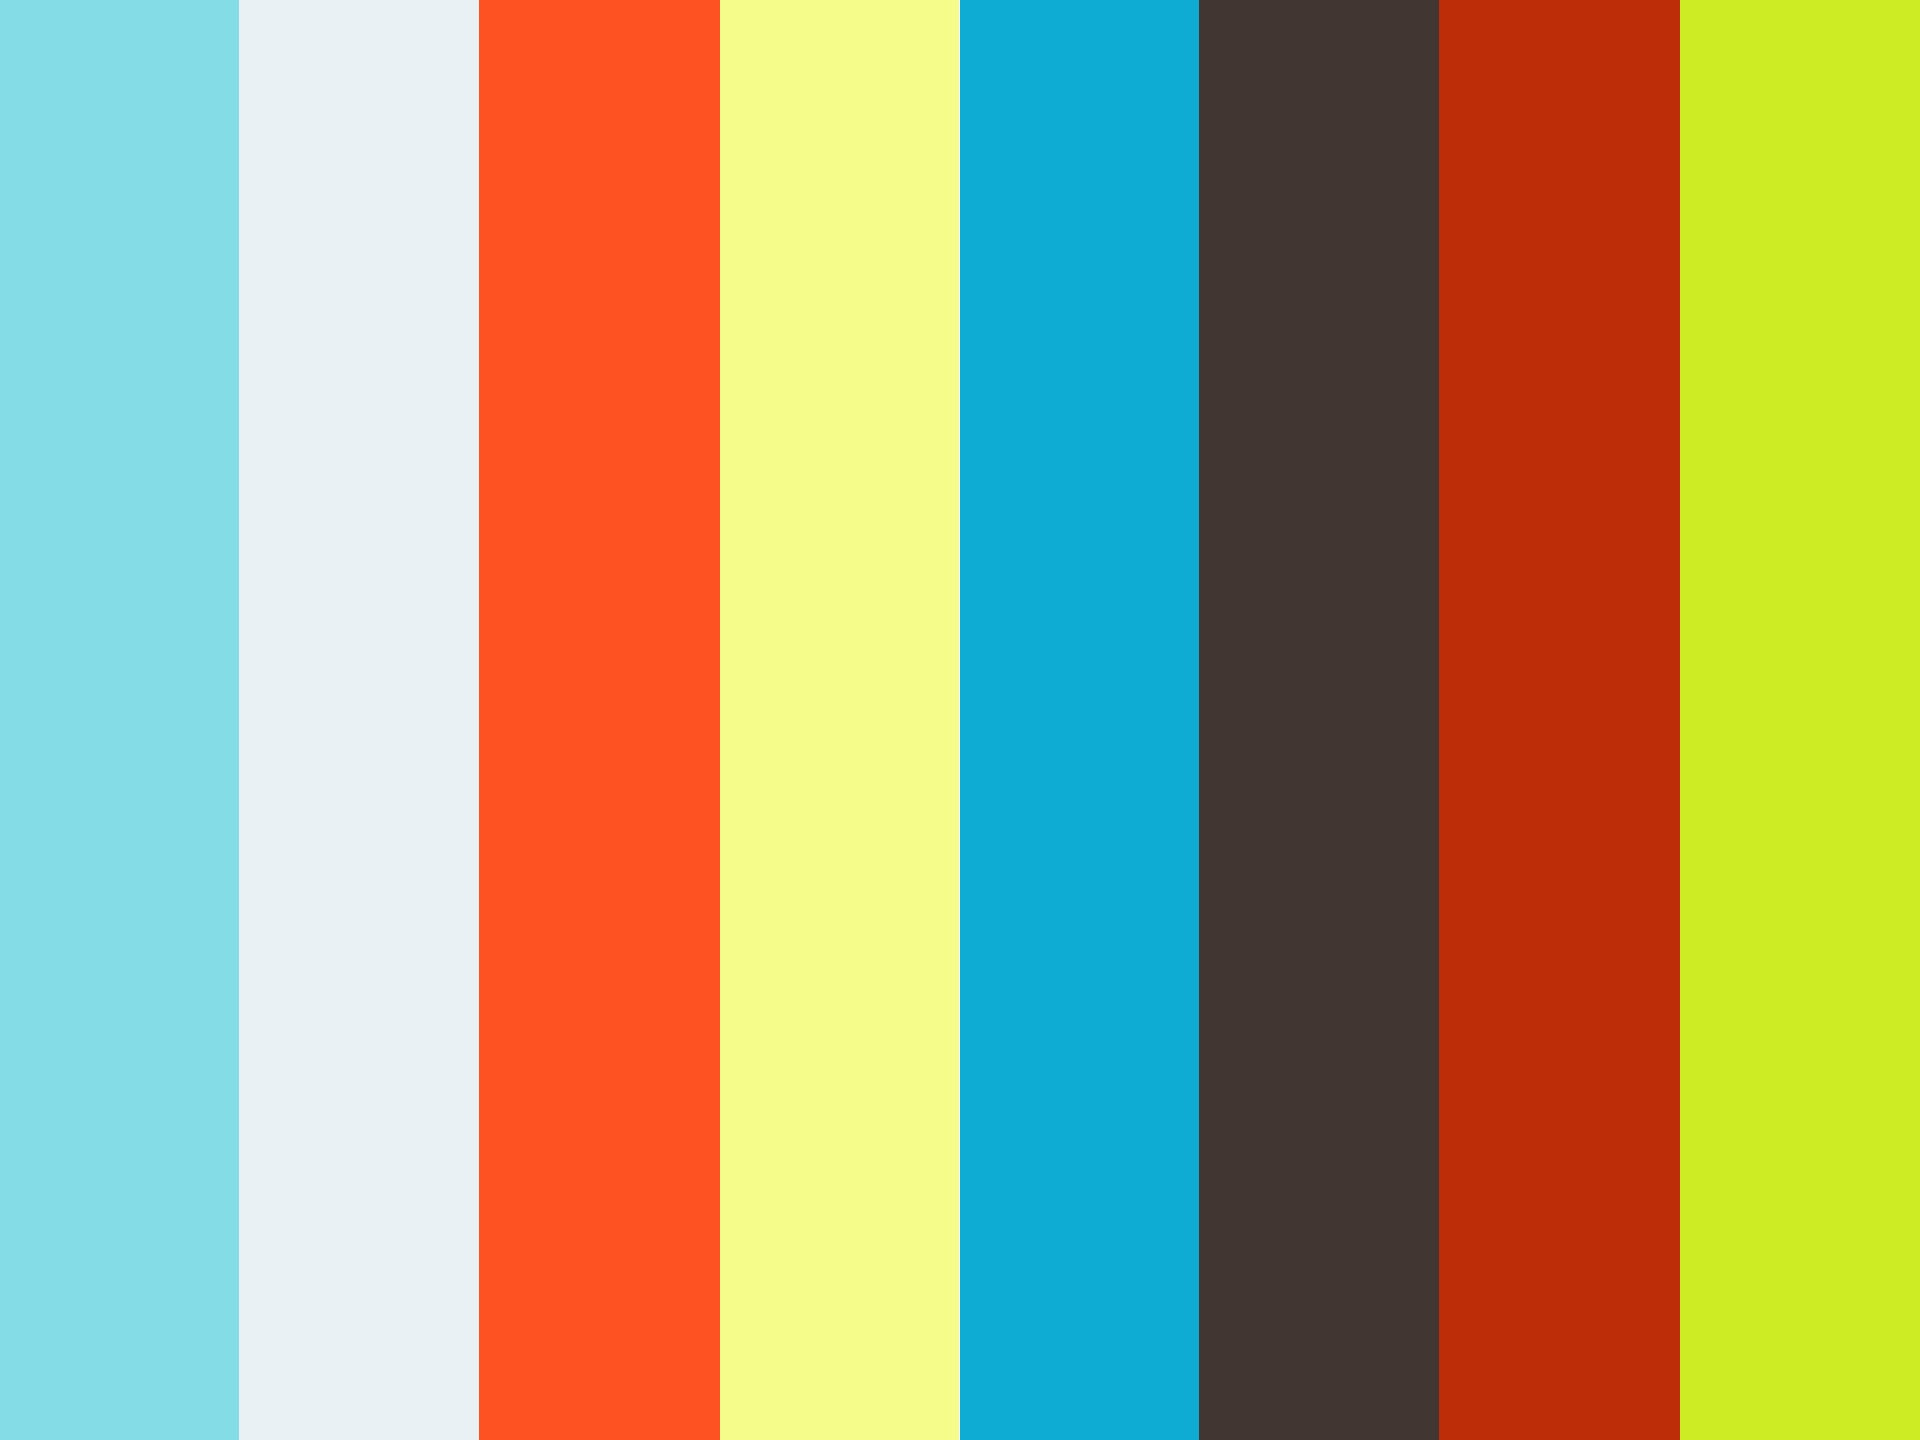 Why Use the ProPhoto RGB Color Space? (Podcast 423) on Vimeo